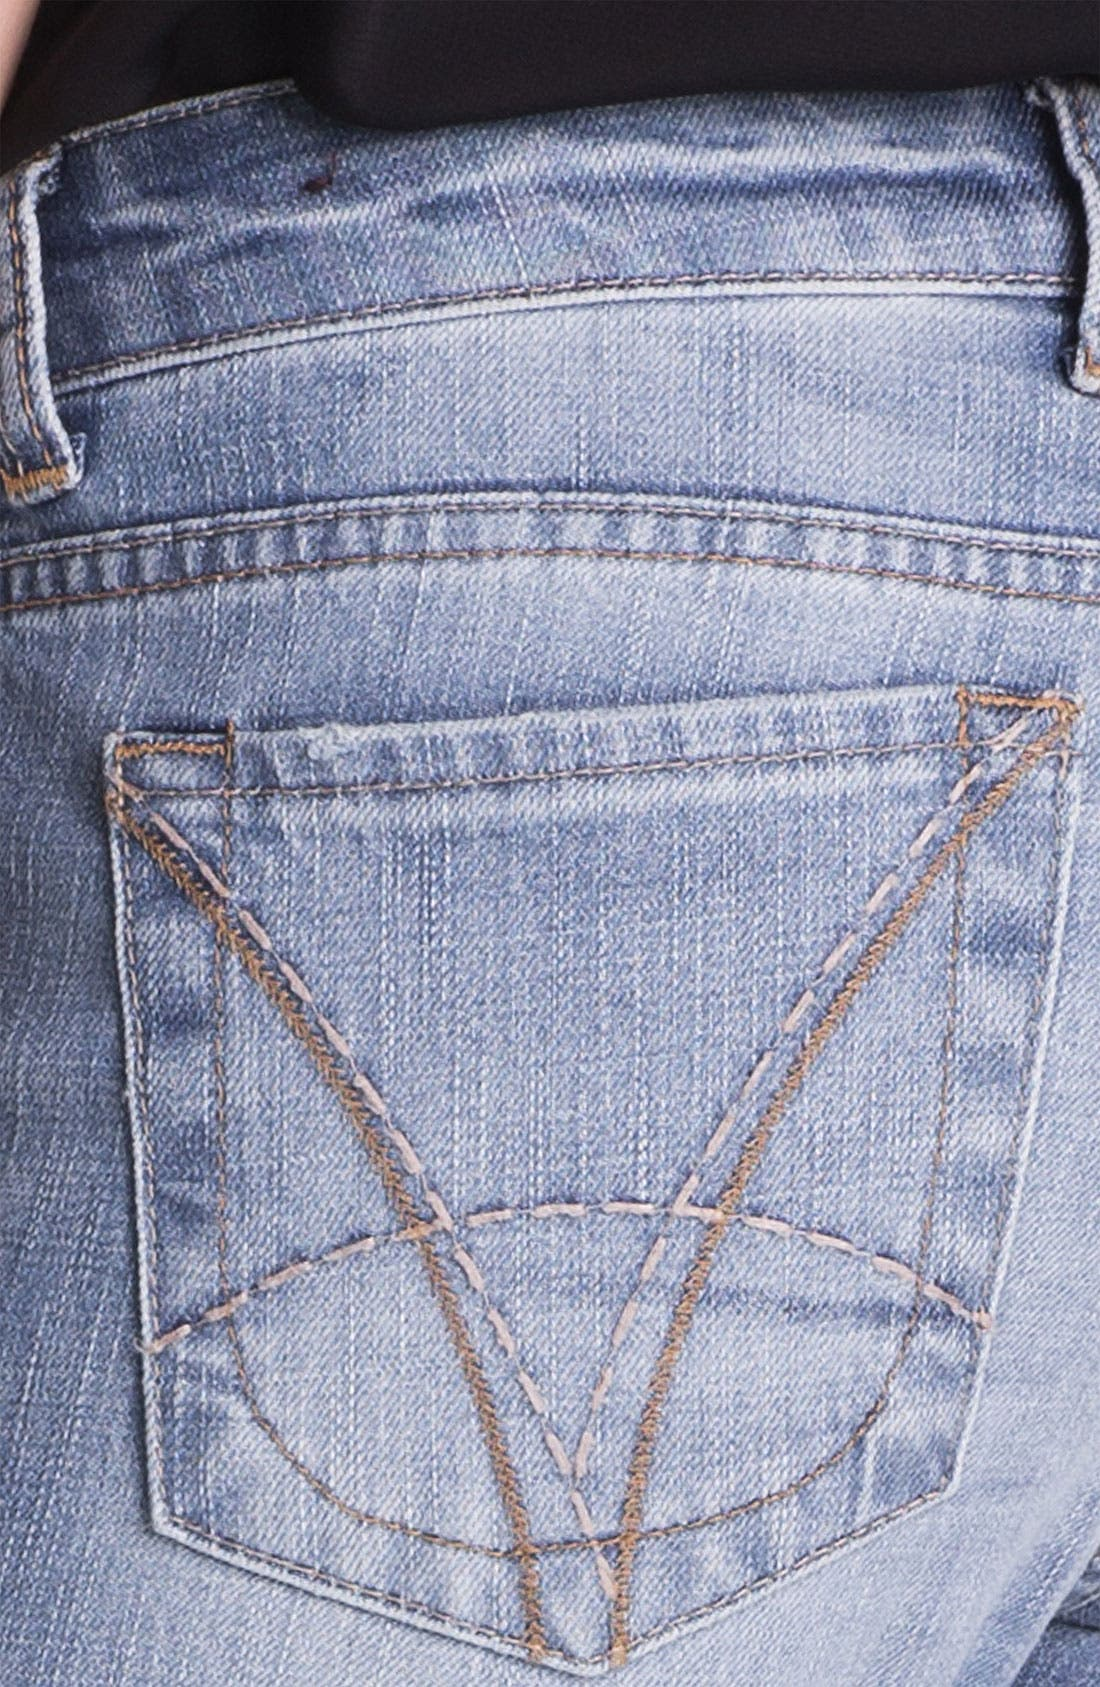 KUT FROM THE KLOTH, 'Catherine' Distressed Slim Boyfriend Jeans, Alternate thumbnail 3, color, 400